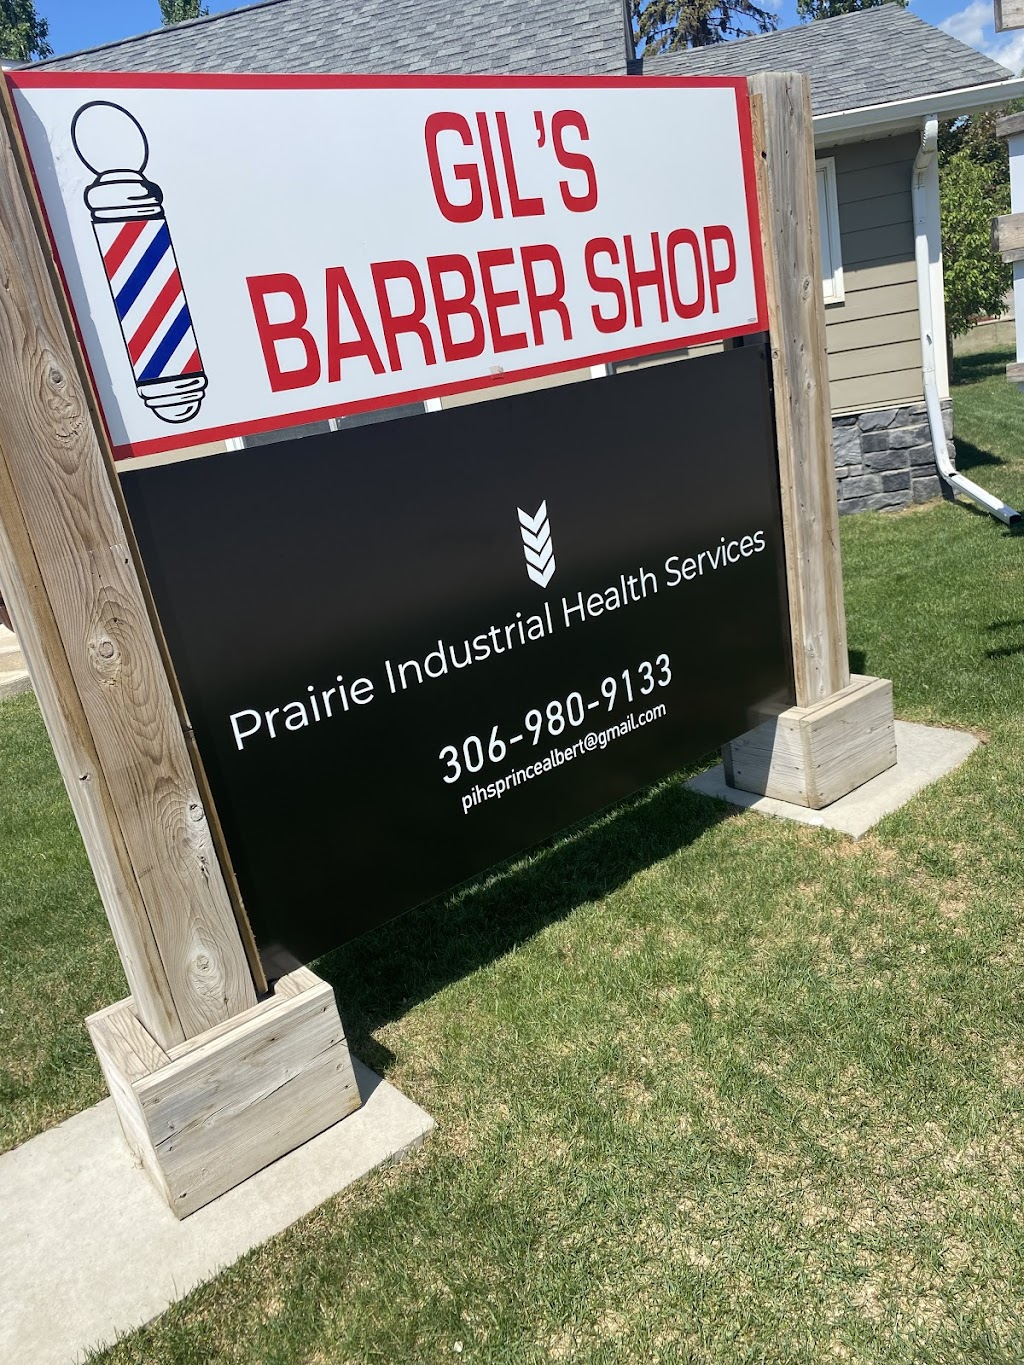 Prairie Industrial Health Services | health | 2333a 2 Ave W, Prince Albert, SK S6V 4S9, Canada | 3069809133 OR +1 306-980-9133